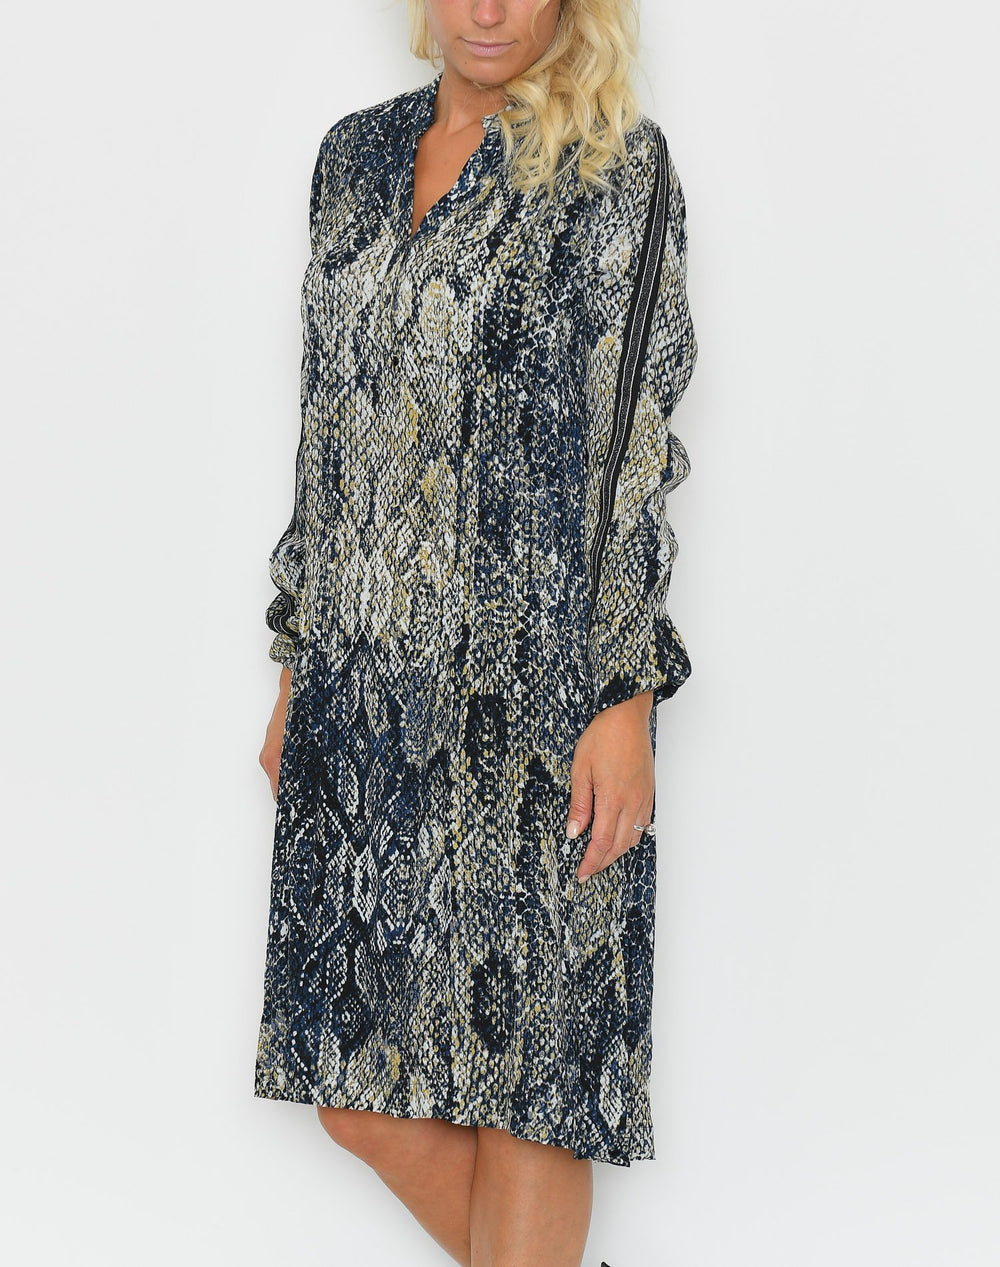 Culture CUandrea snake dress black - Online-Mode